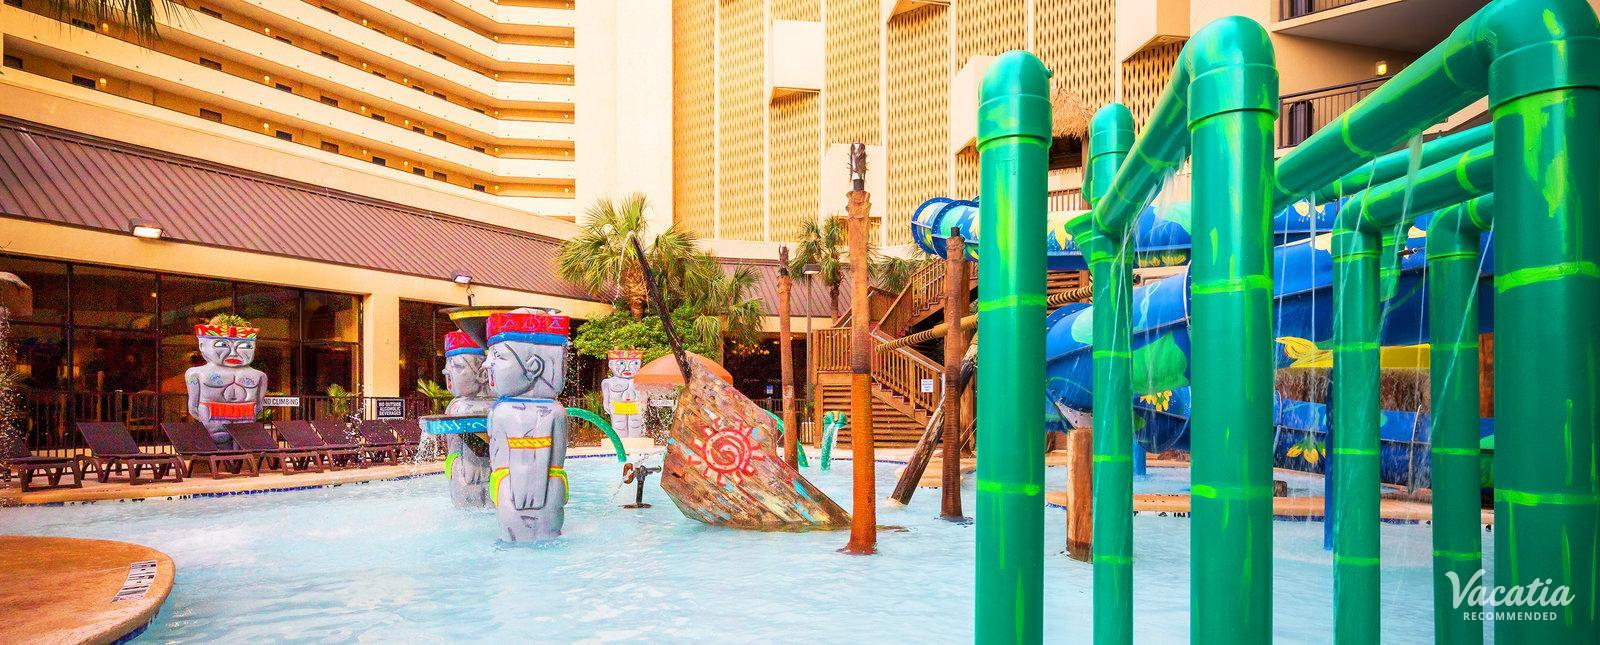 Ocean Reef Resort waterslides fountains pools